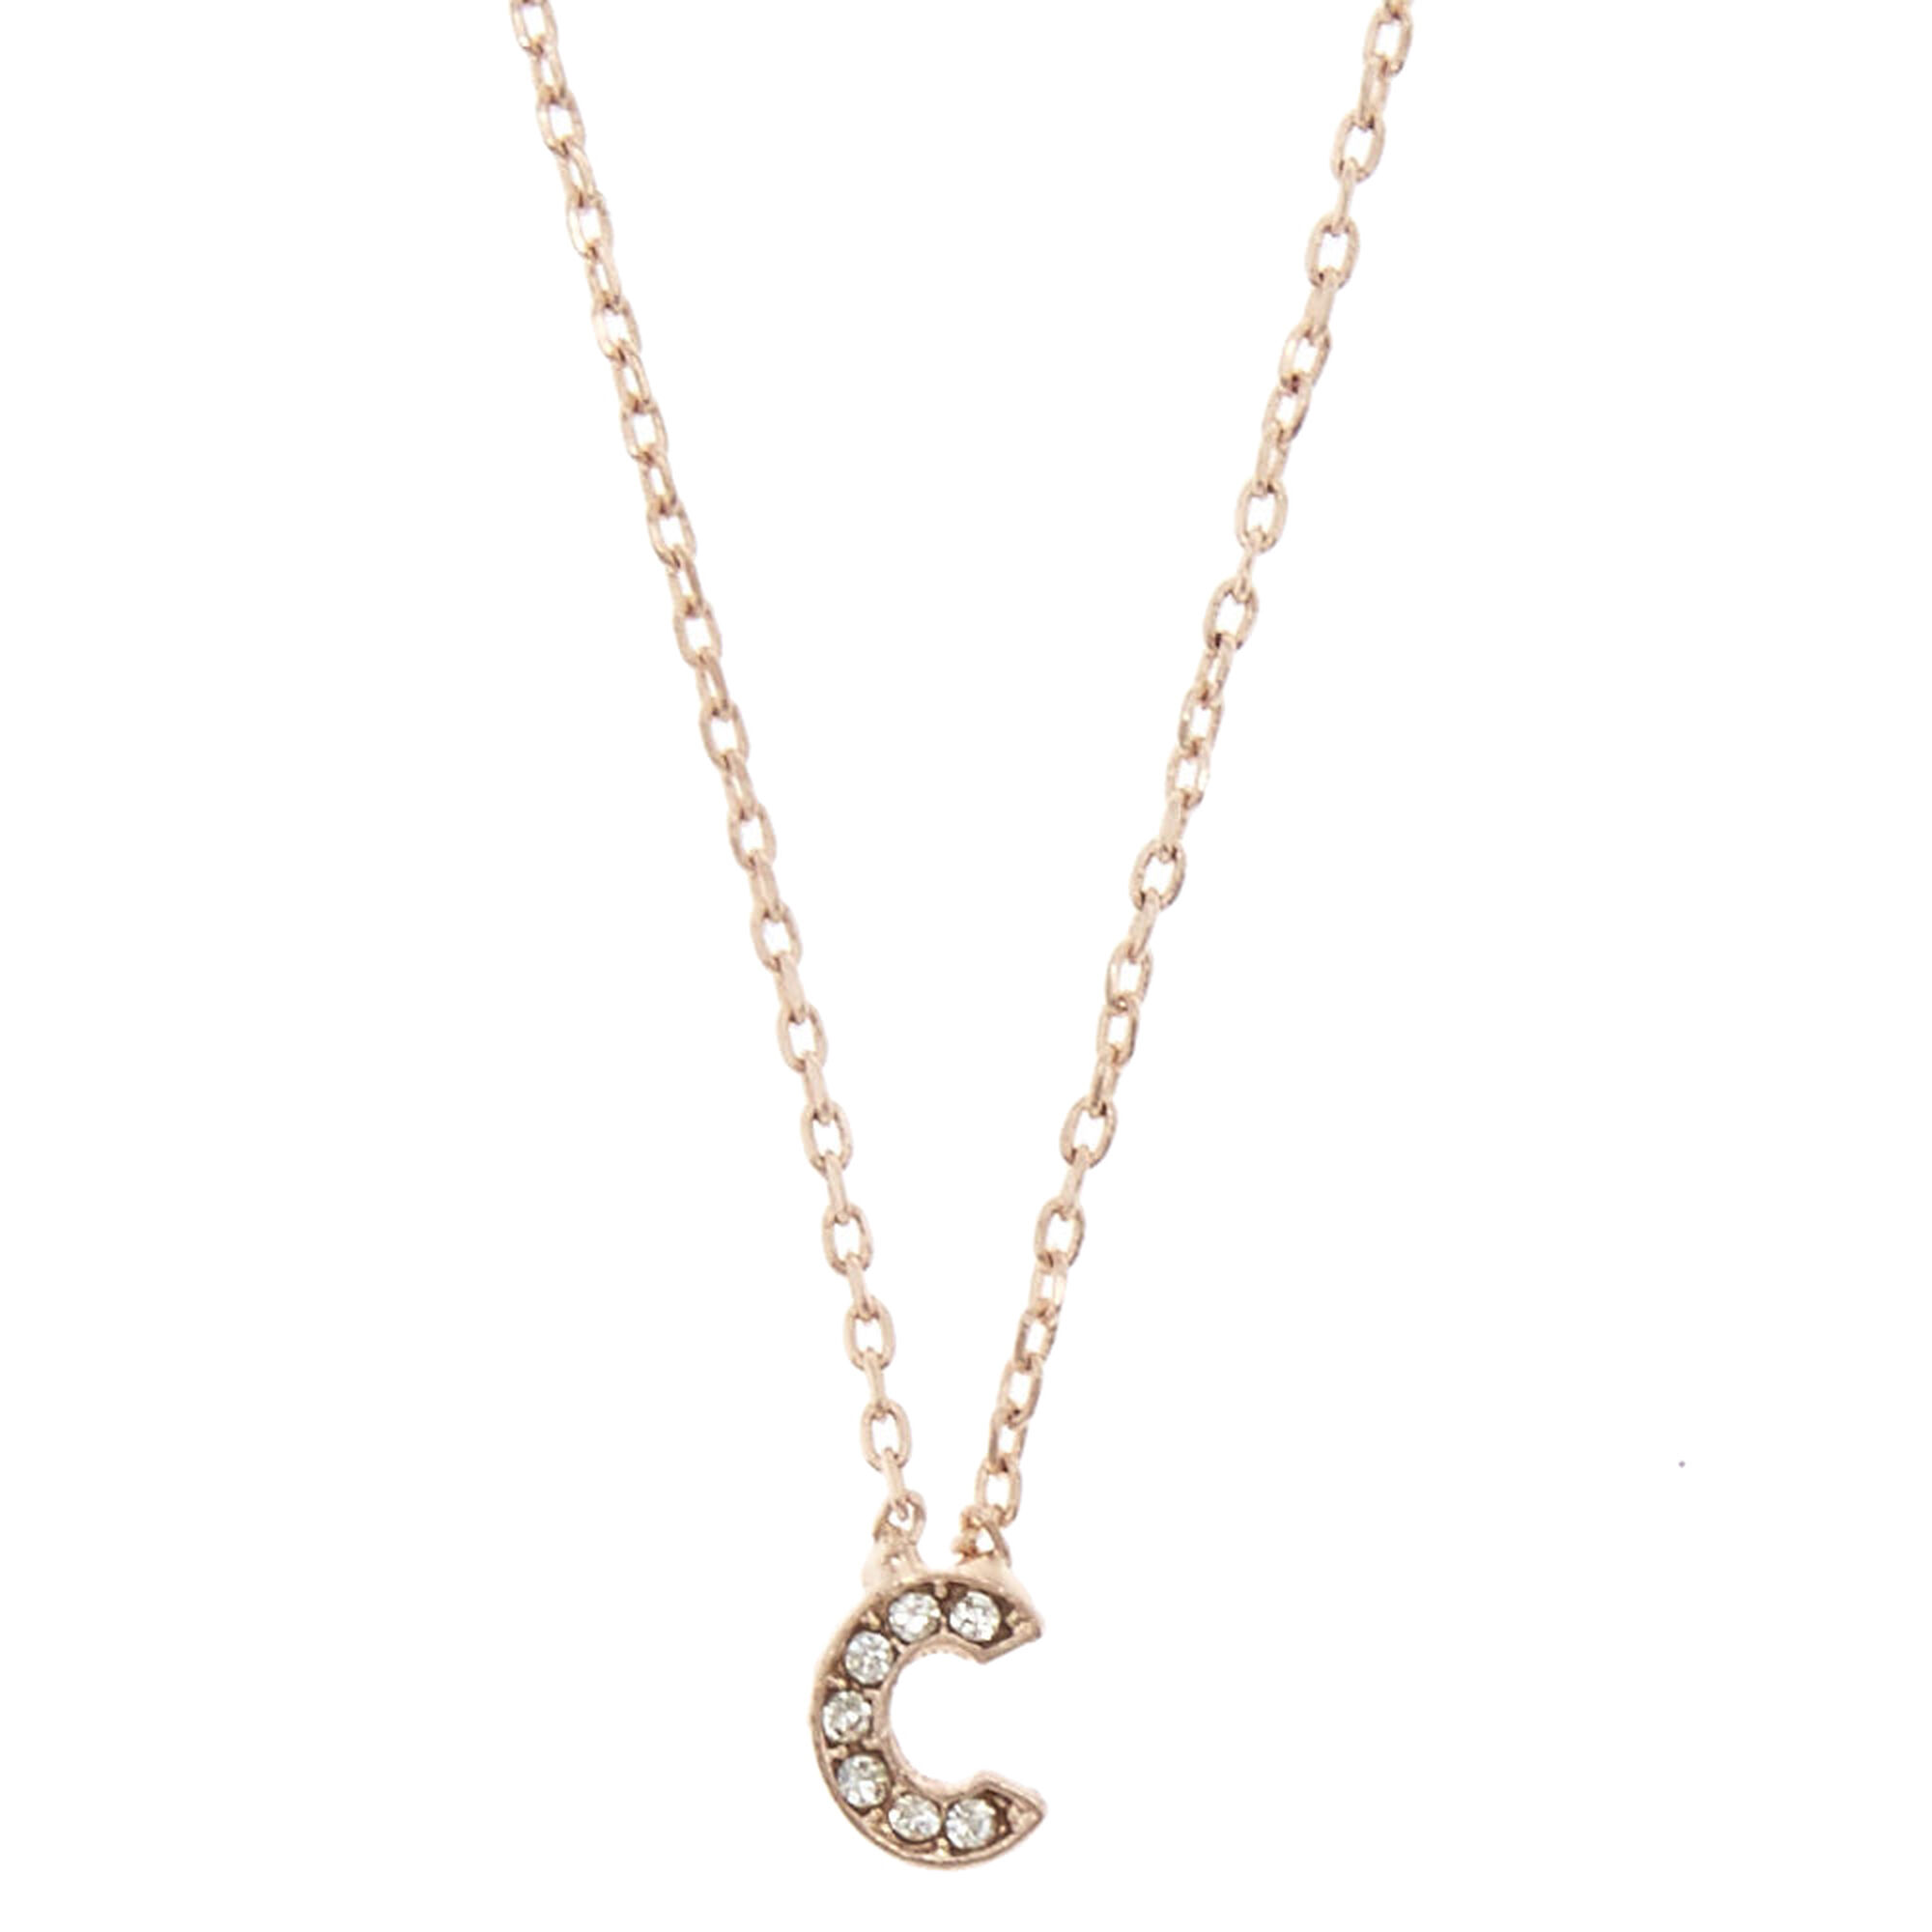 Rose gold tone c initial pendant necklace icing us rose gold tone quotcquot initial pendant aloadofball